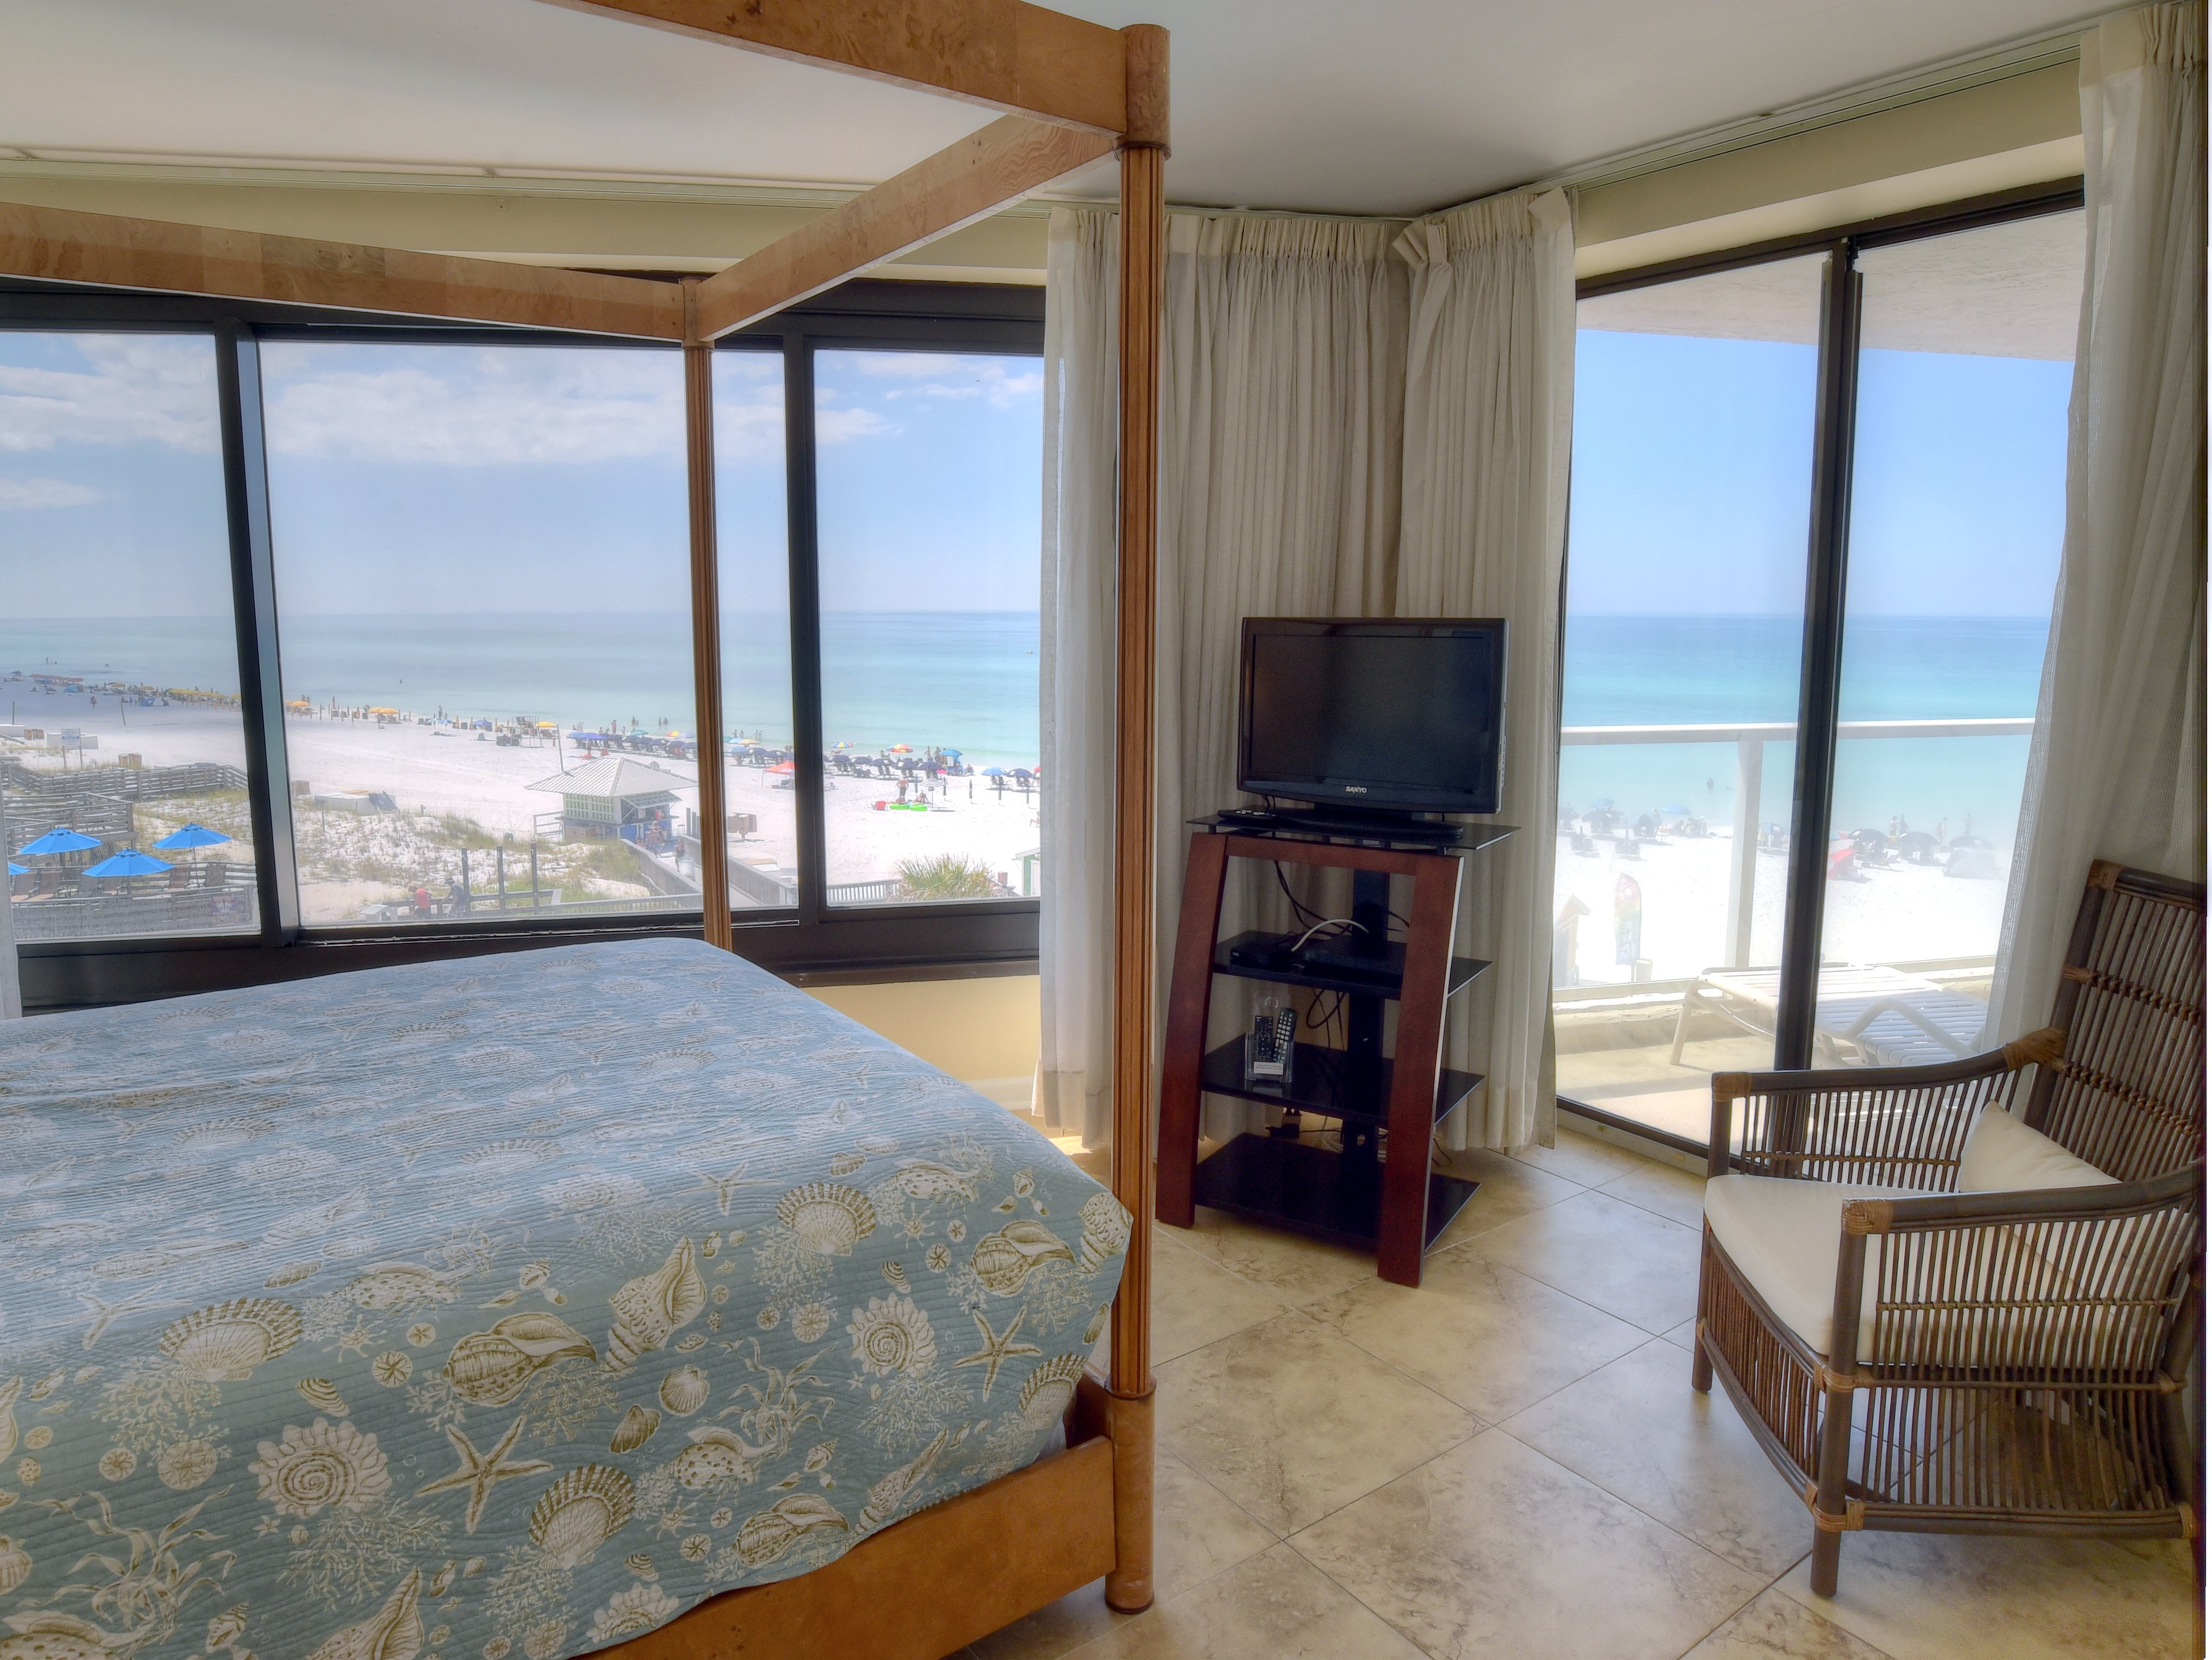 4243 Beachside Two Condo rental in Beachside Towers at Sandestin in Destin Florida - #19